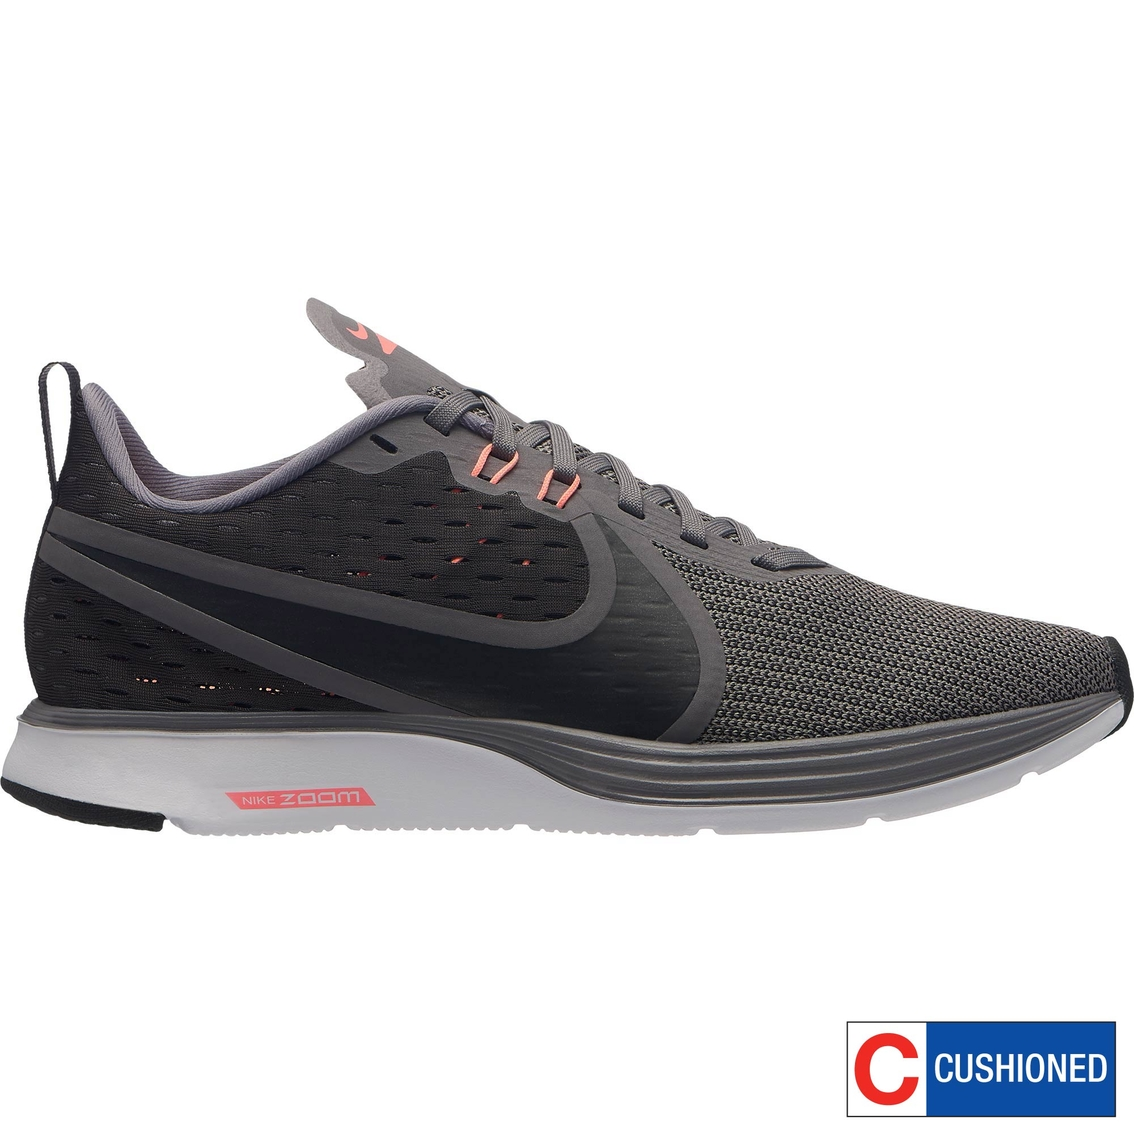 c4c7c4bba8b92 Nike Women s Zoom Strike 2 Running Shoes